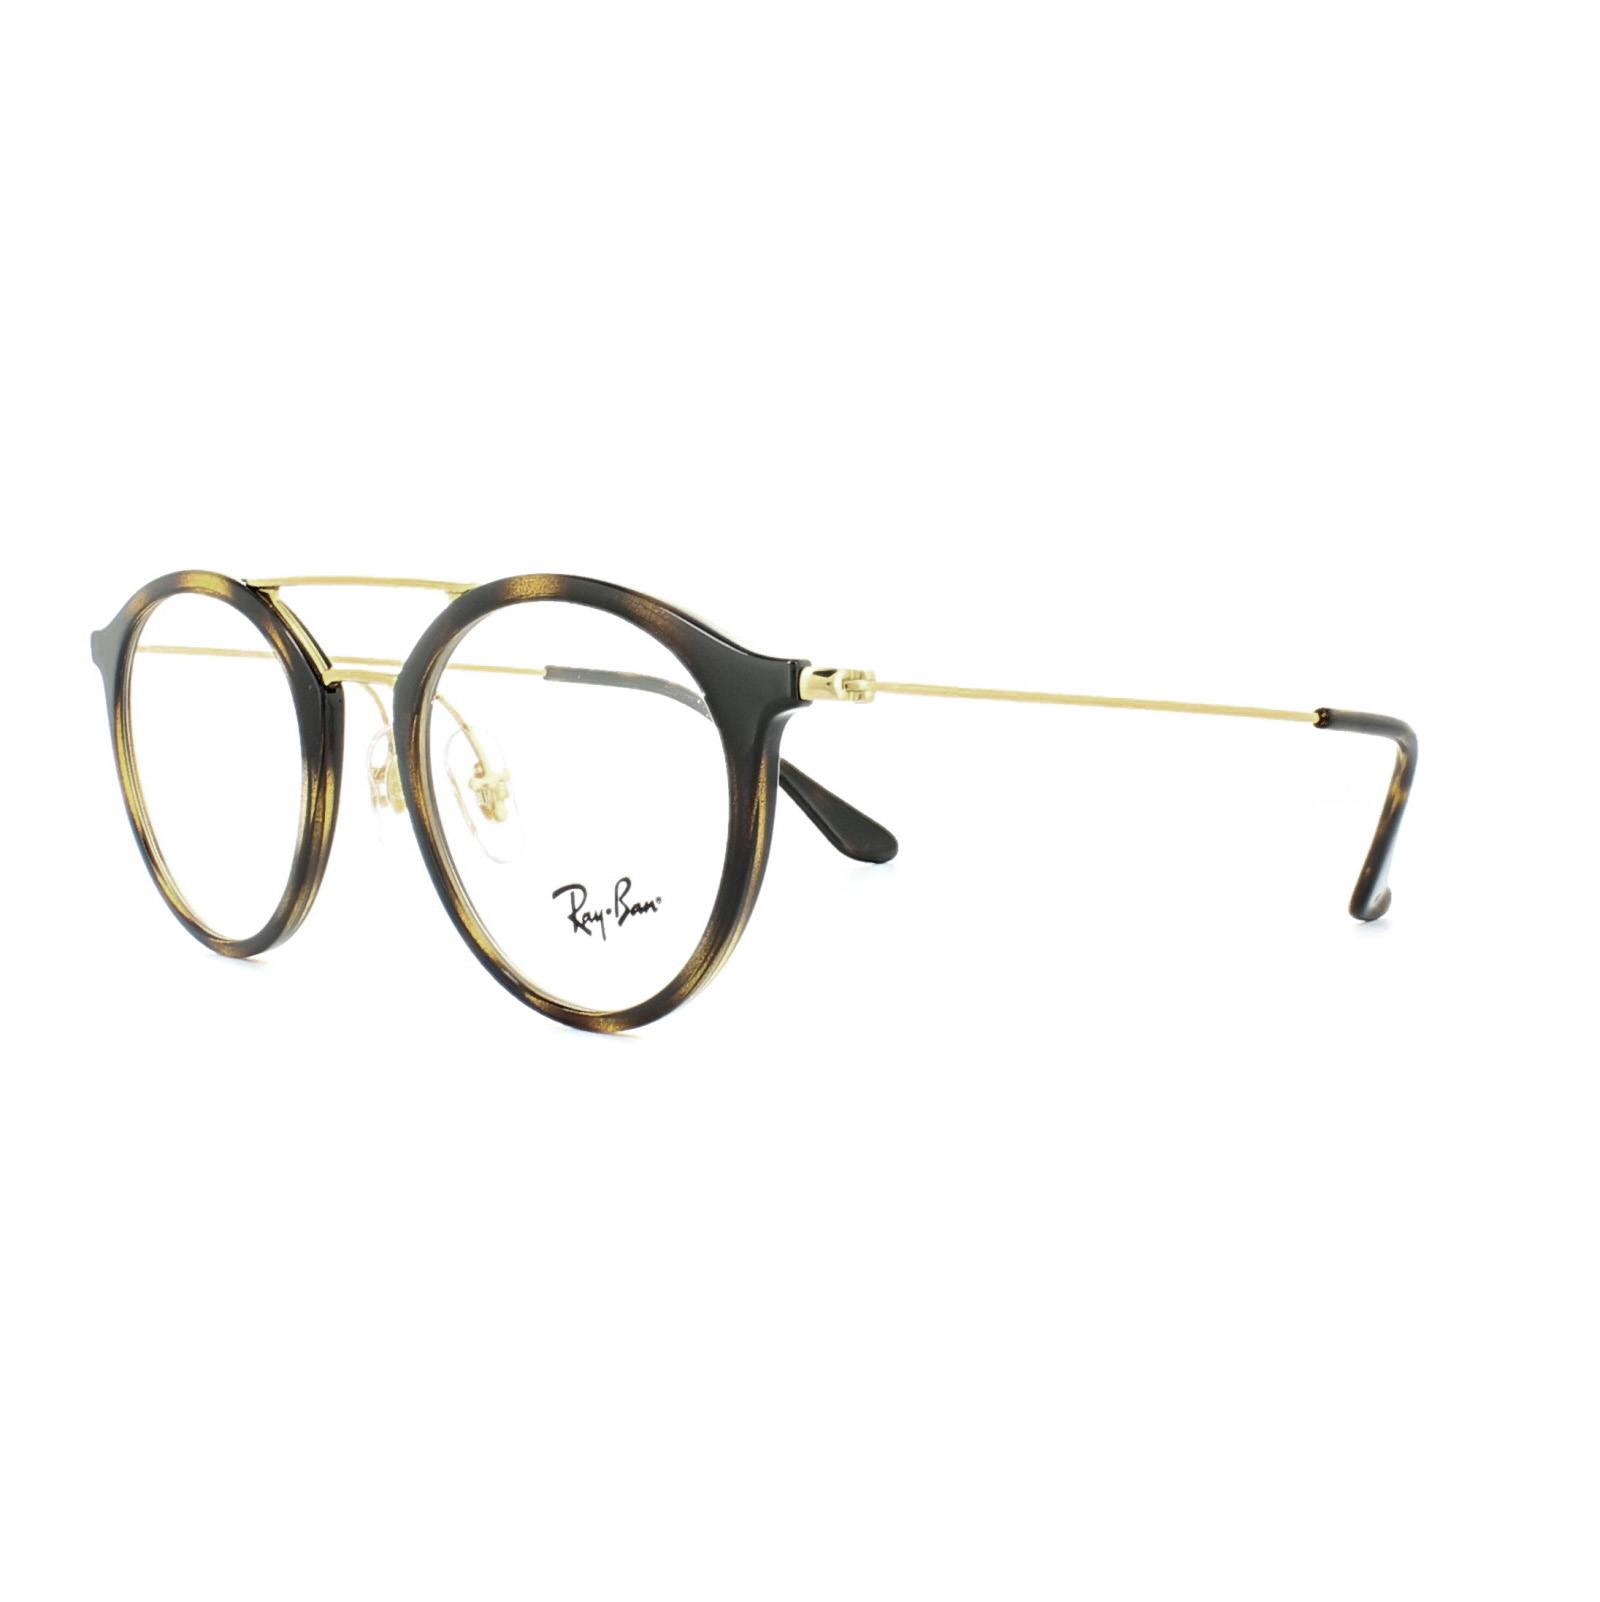 800caaa2d4 Ray-Ban 7097 Glasses Frames ...